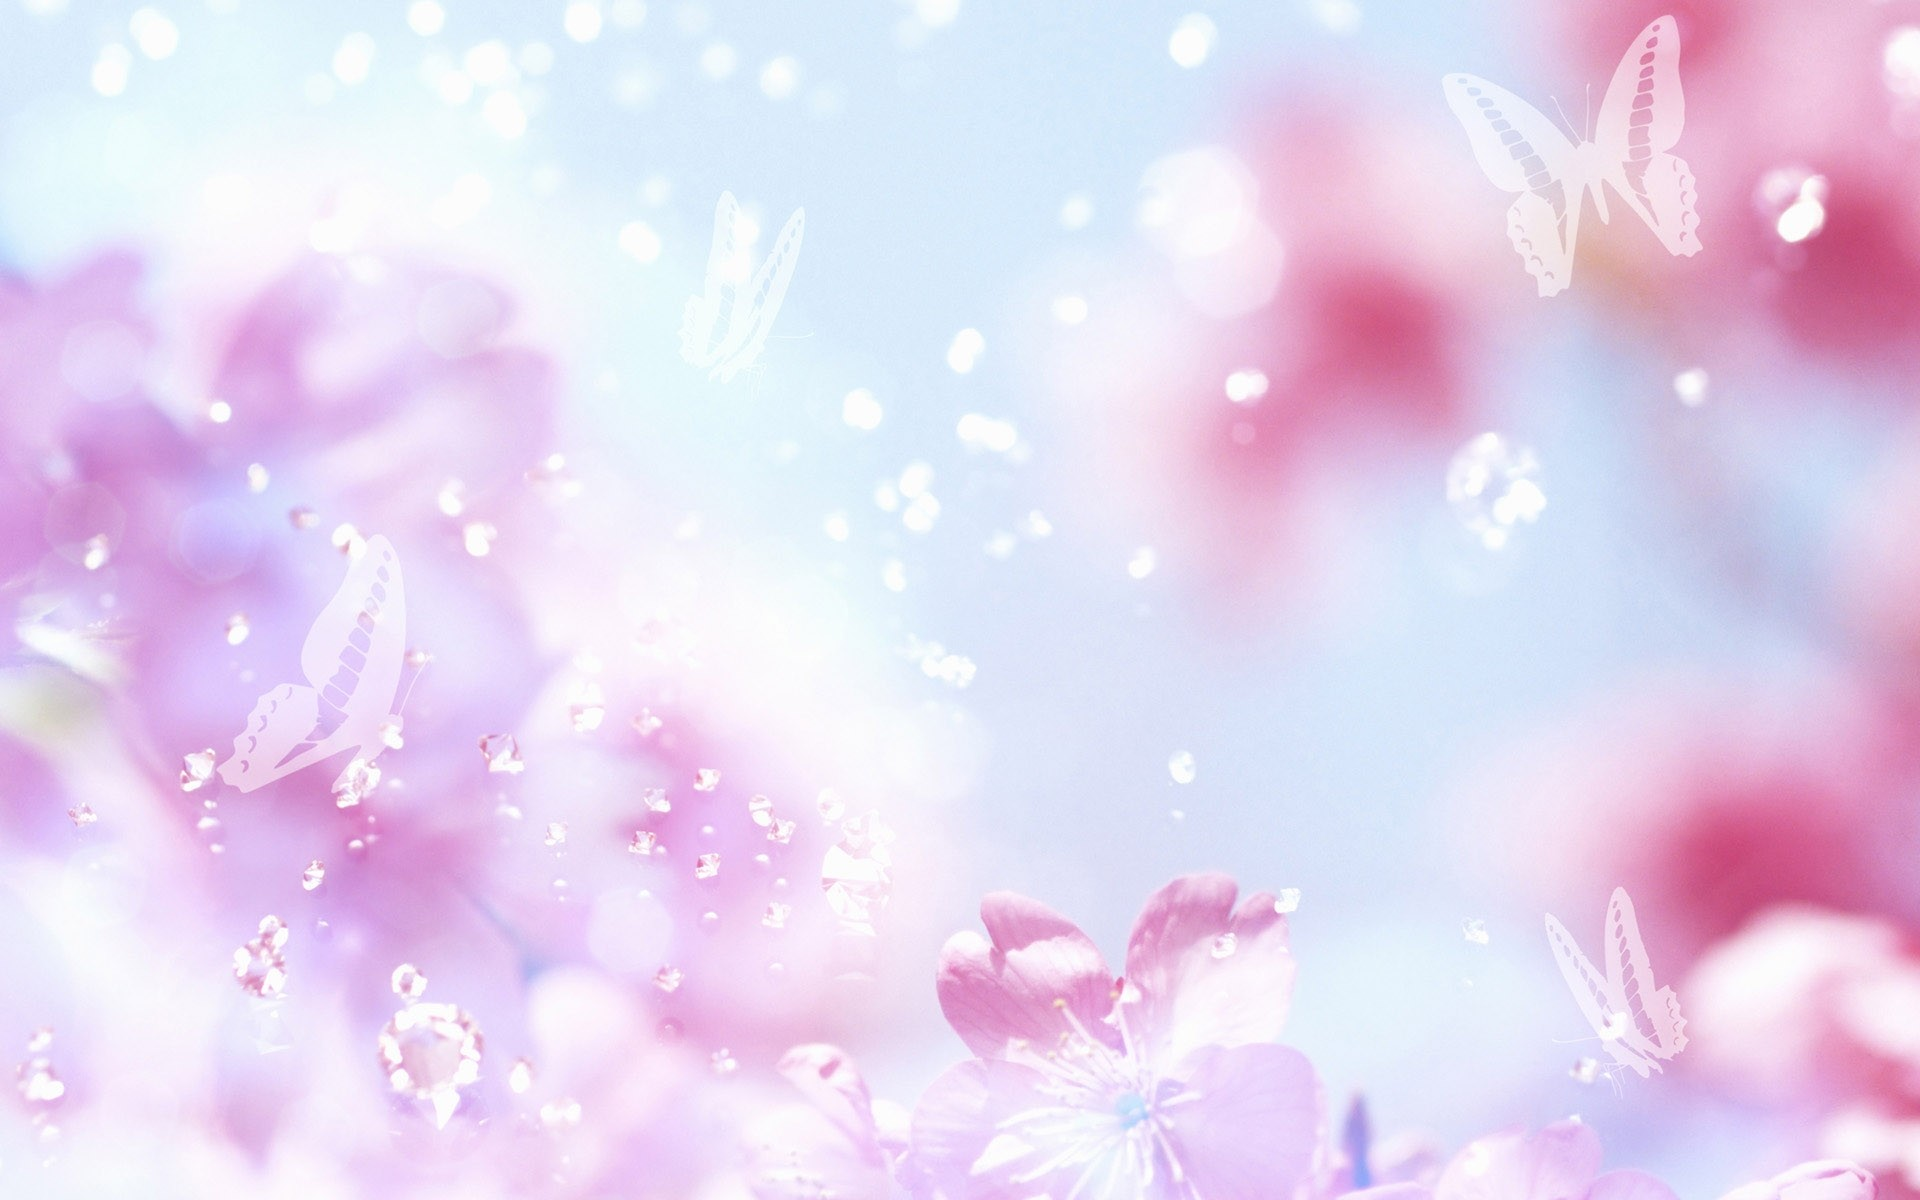 Pretty Wallpapers for Desktop 49 images 1920x1200